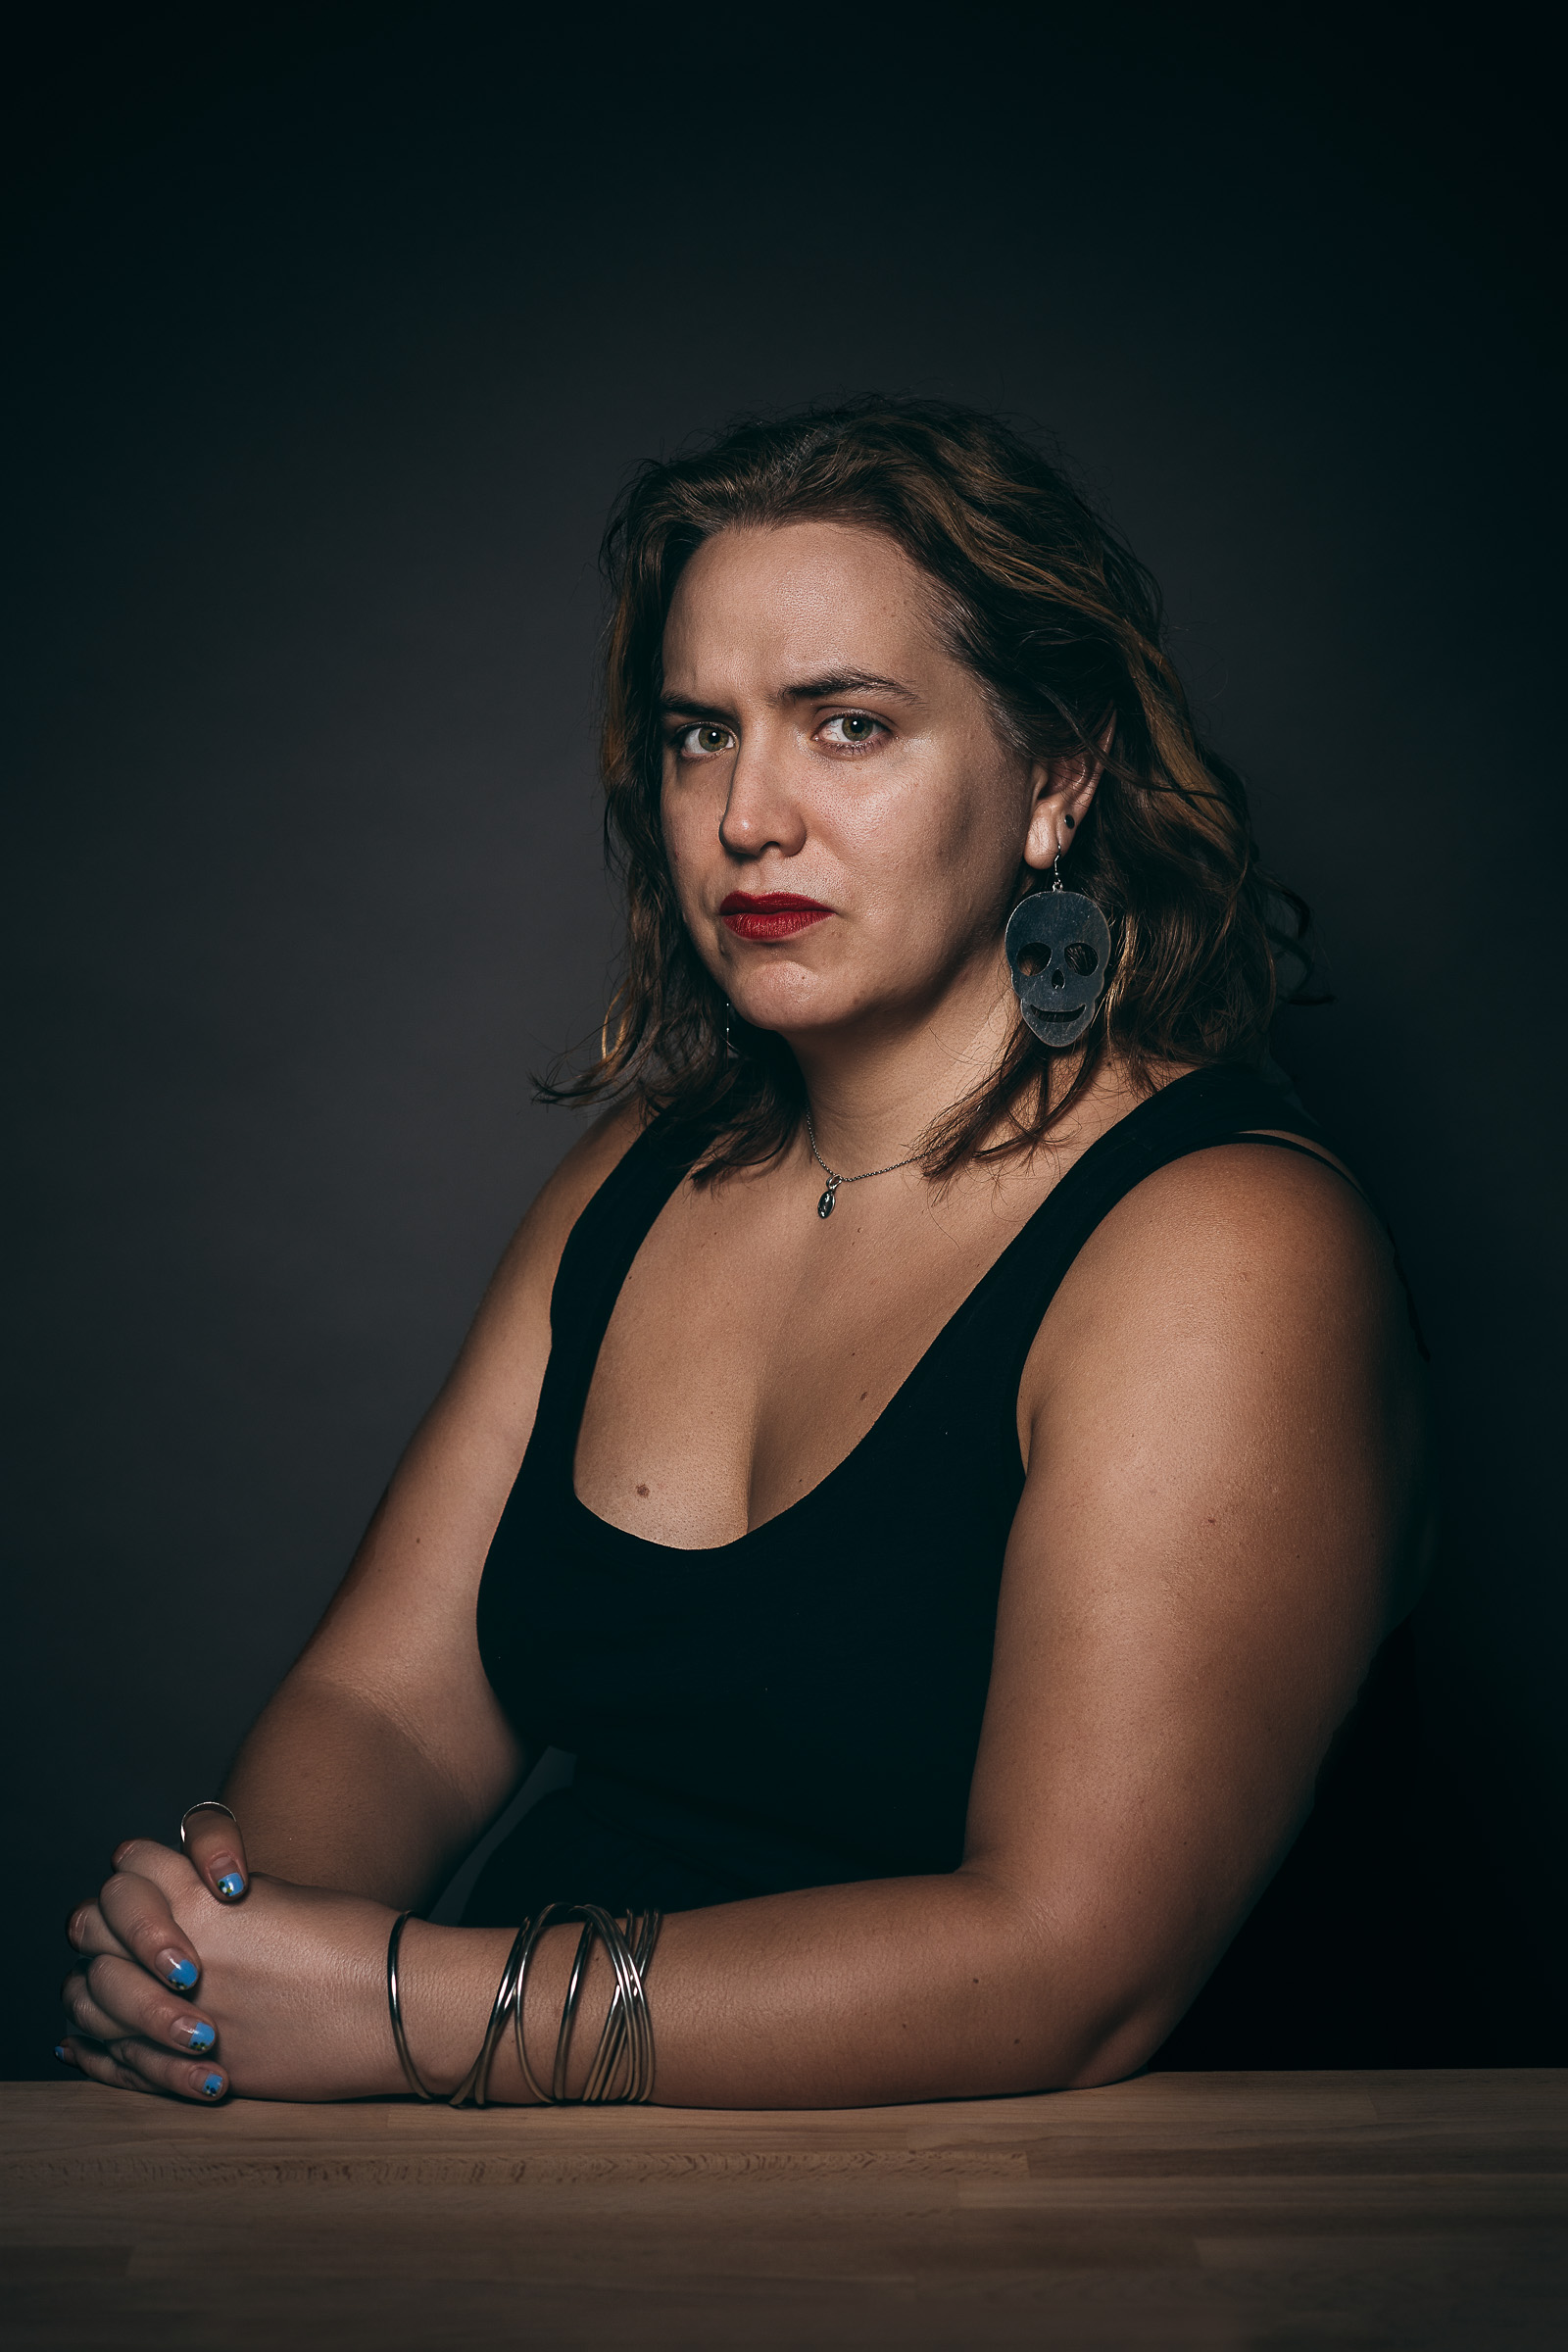 Sara Ines Calderon-Corporate Portrait of Gender Equity Activist